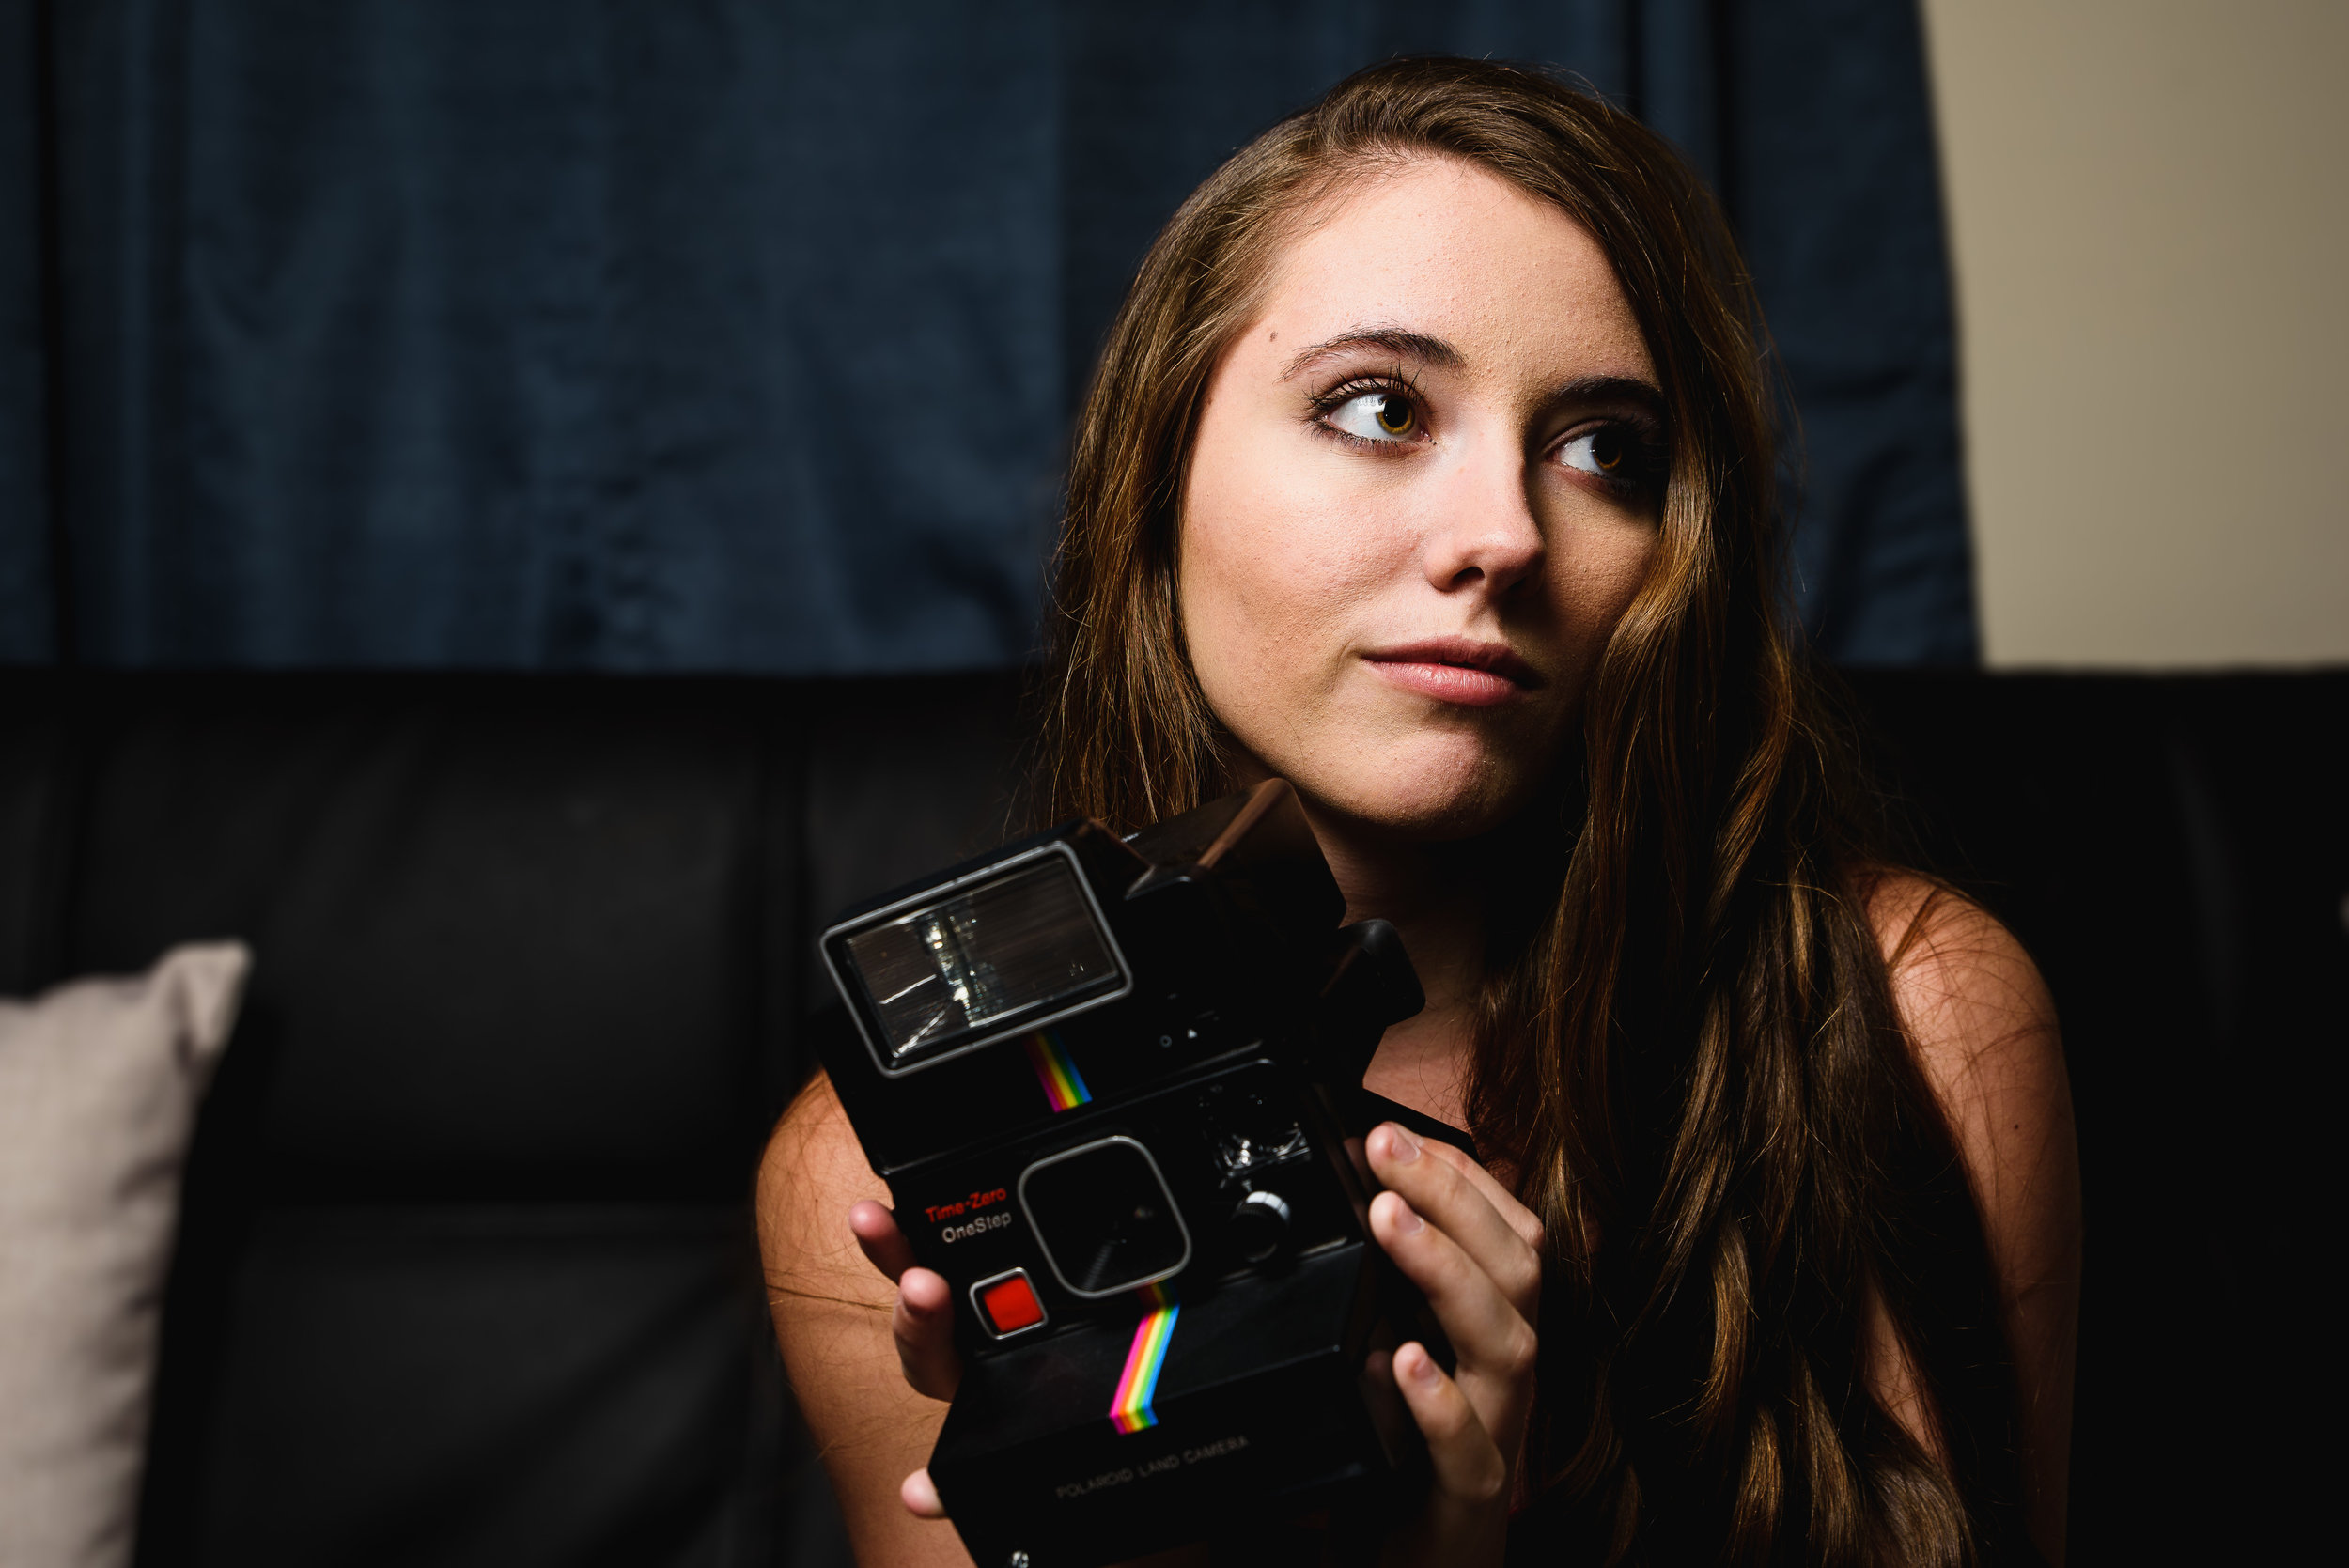 Nikon D750 Tamron 24-70 f/2.8 G2 @ 45mm 1/125s f/5.6 ISO 100 - Portrait of a photographer with a Polaroid one-step instant camera.